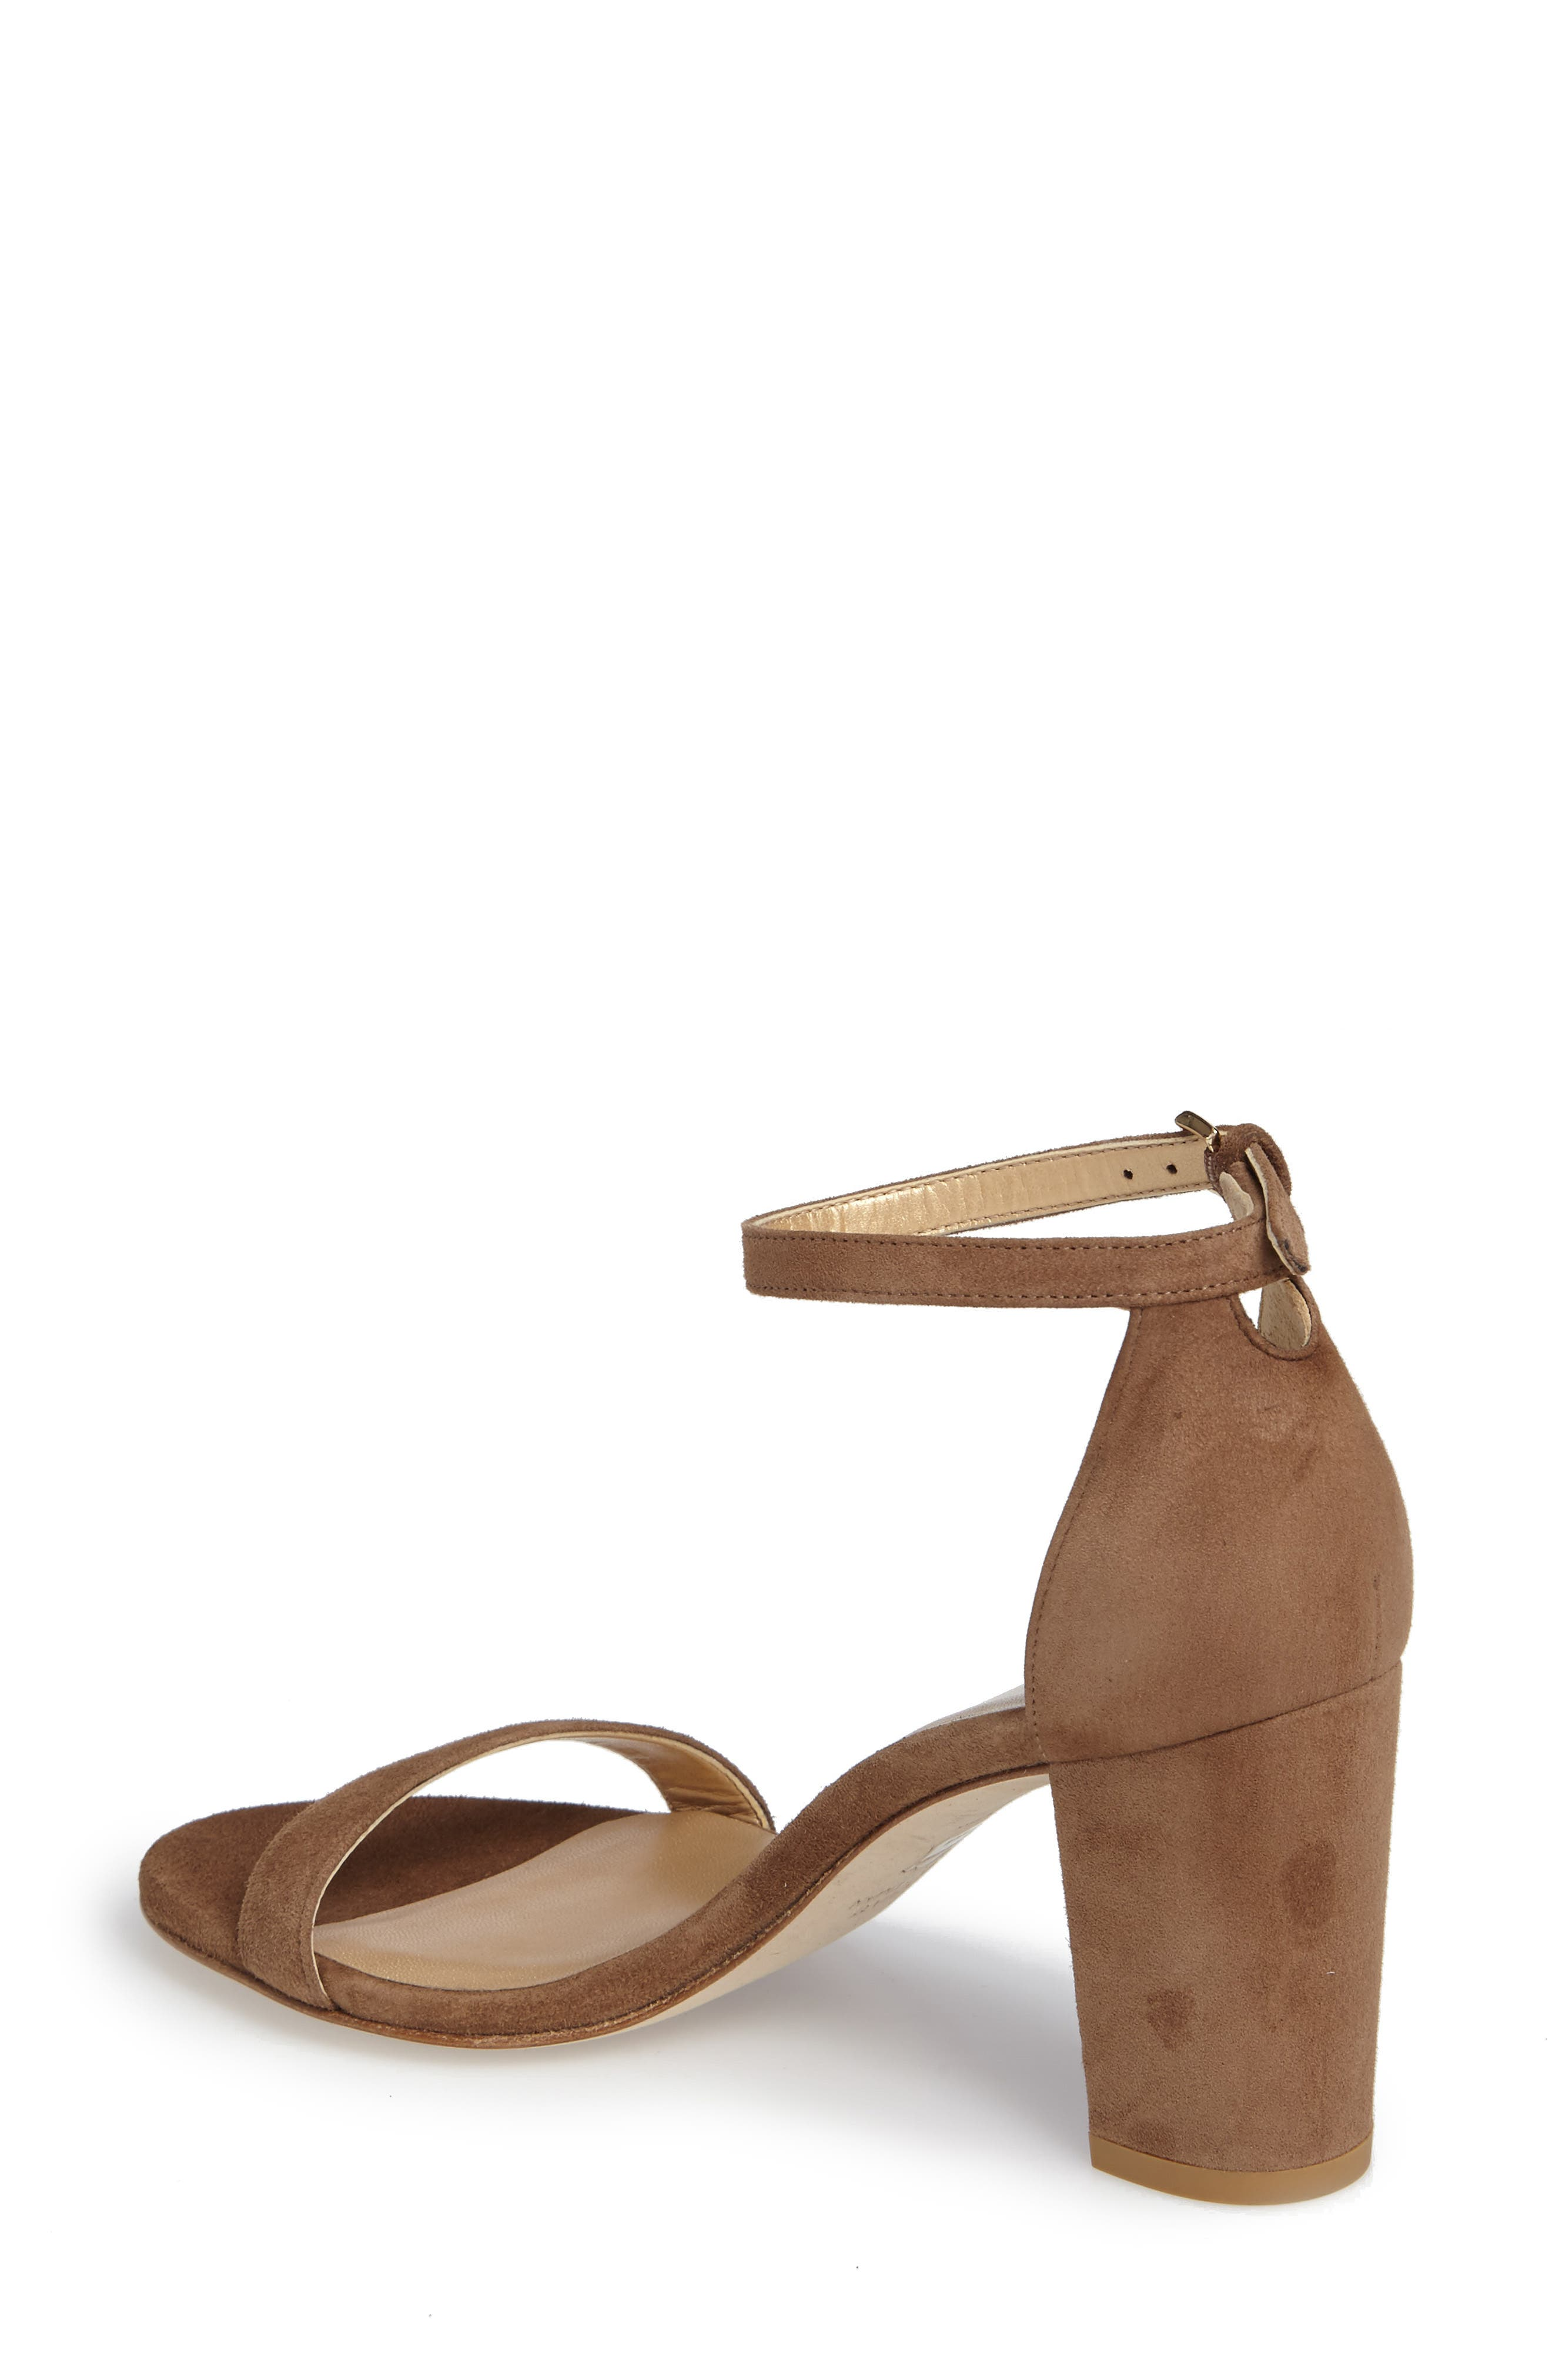 NearlyNude Ankle Strap Sandal,                             Alternate thumbnail 43, color,